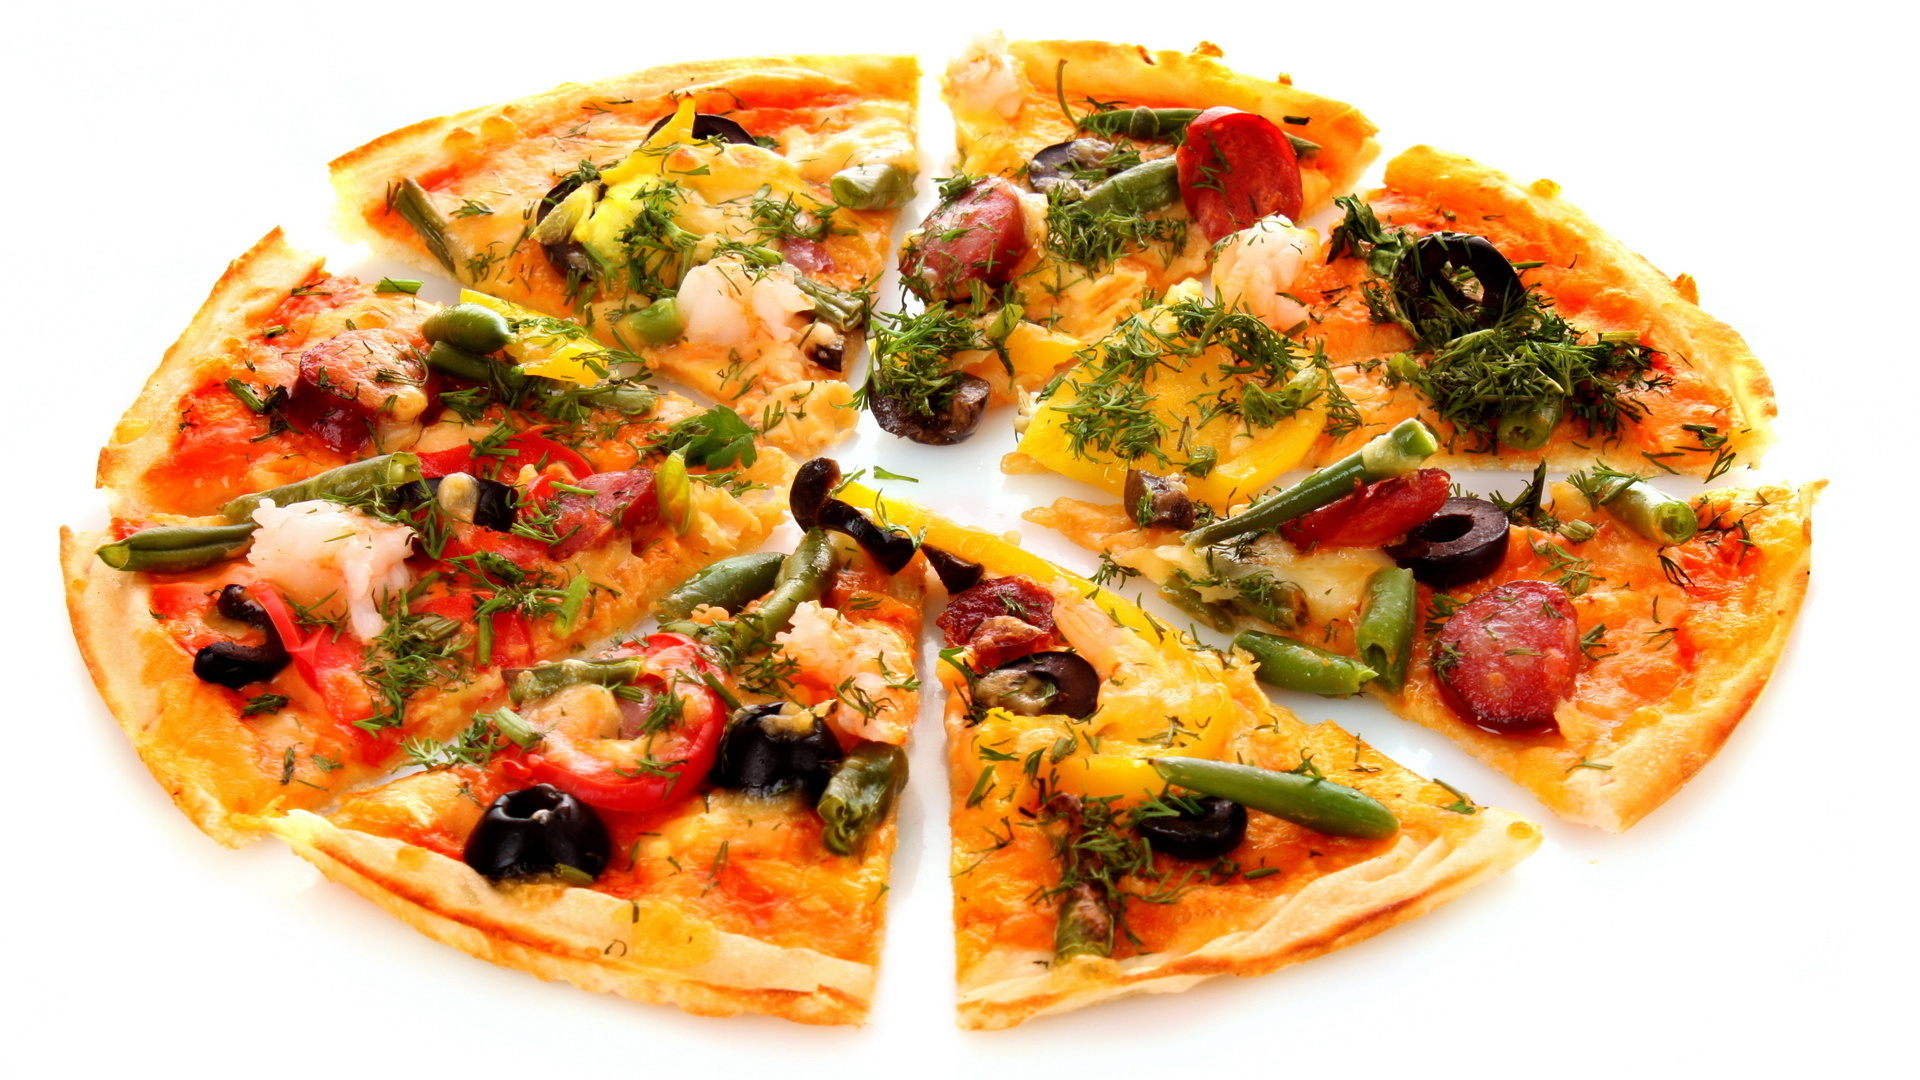 PNG HD Pizza - 146034